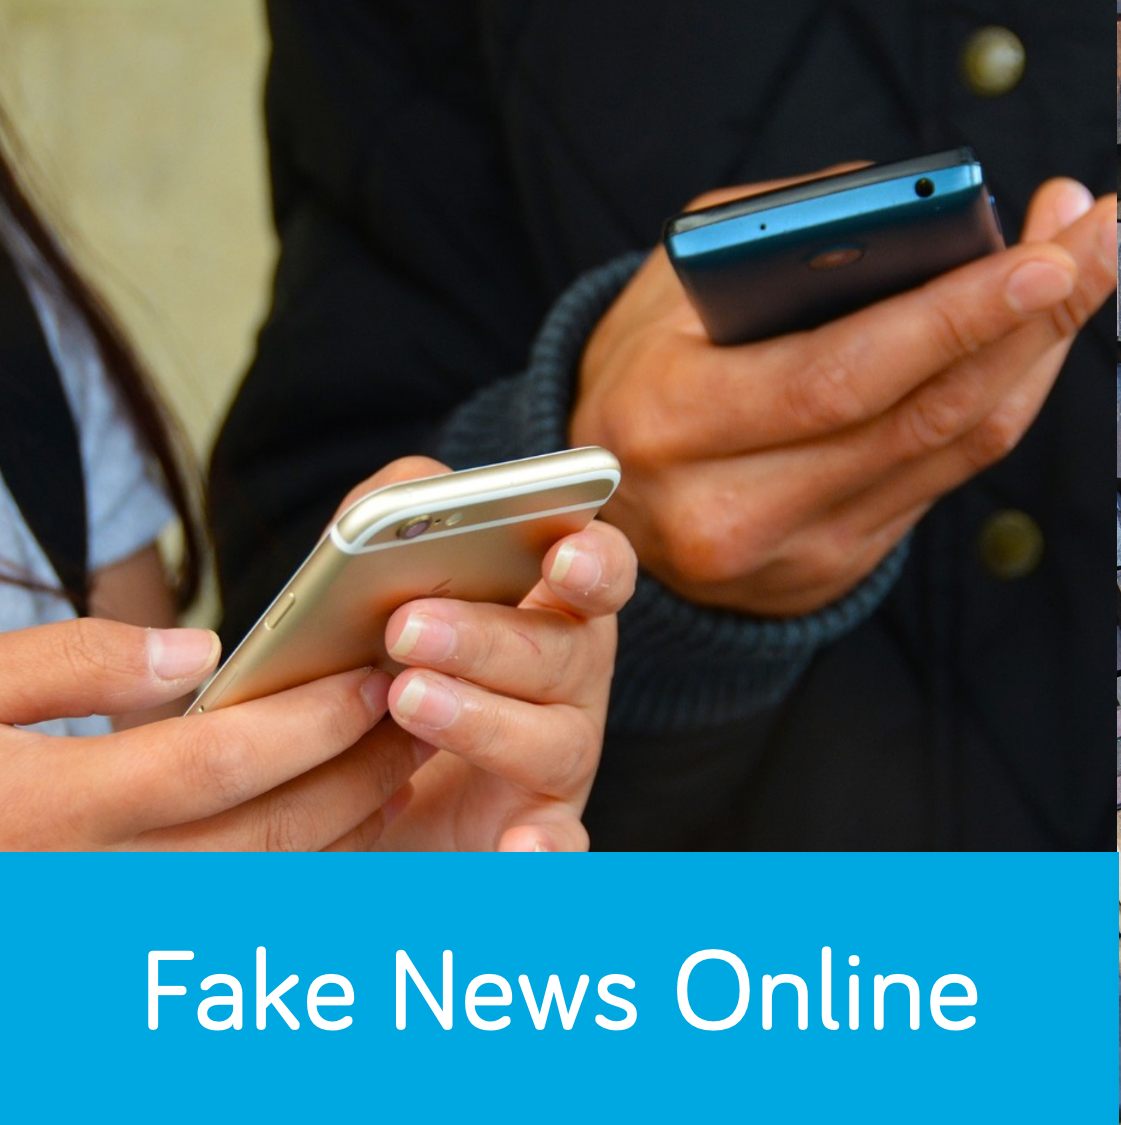 Fake News Online button. Features two people holding mobile phones